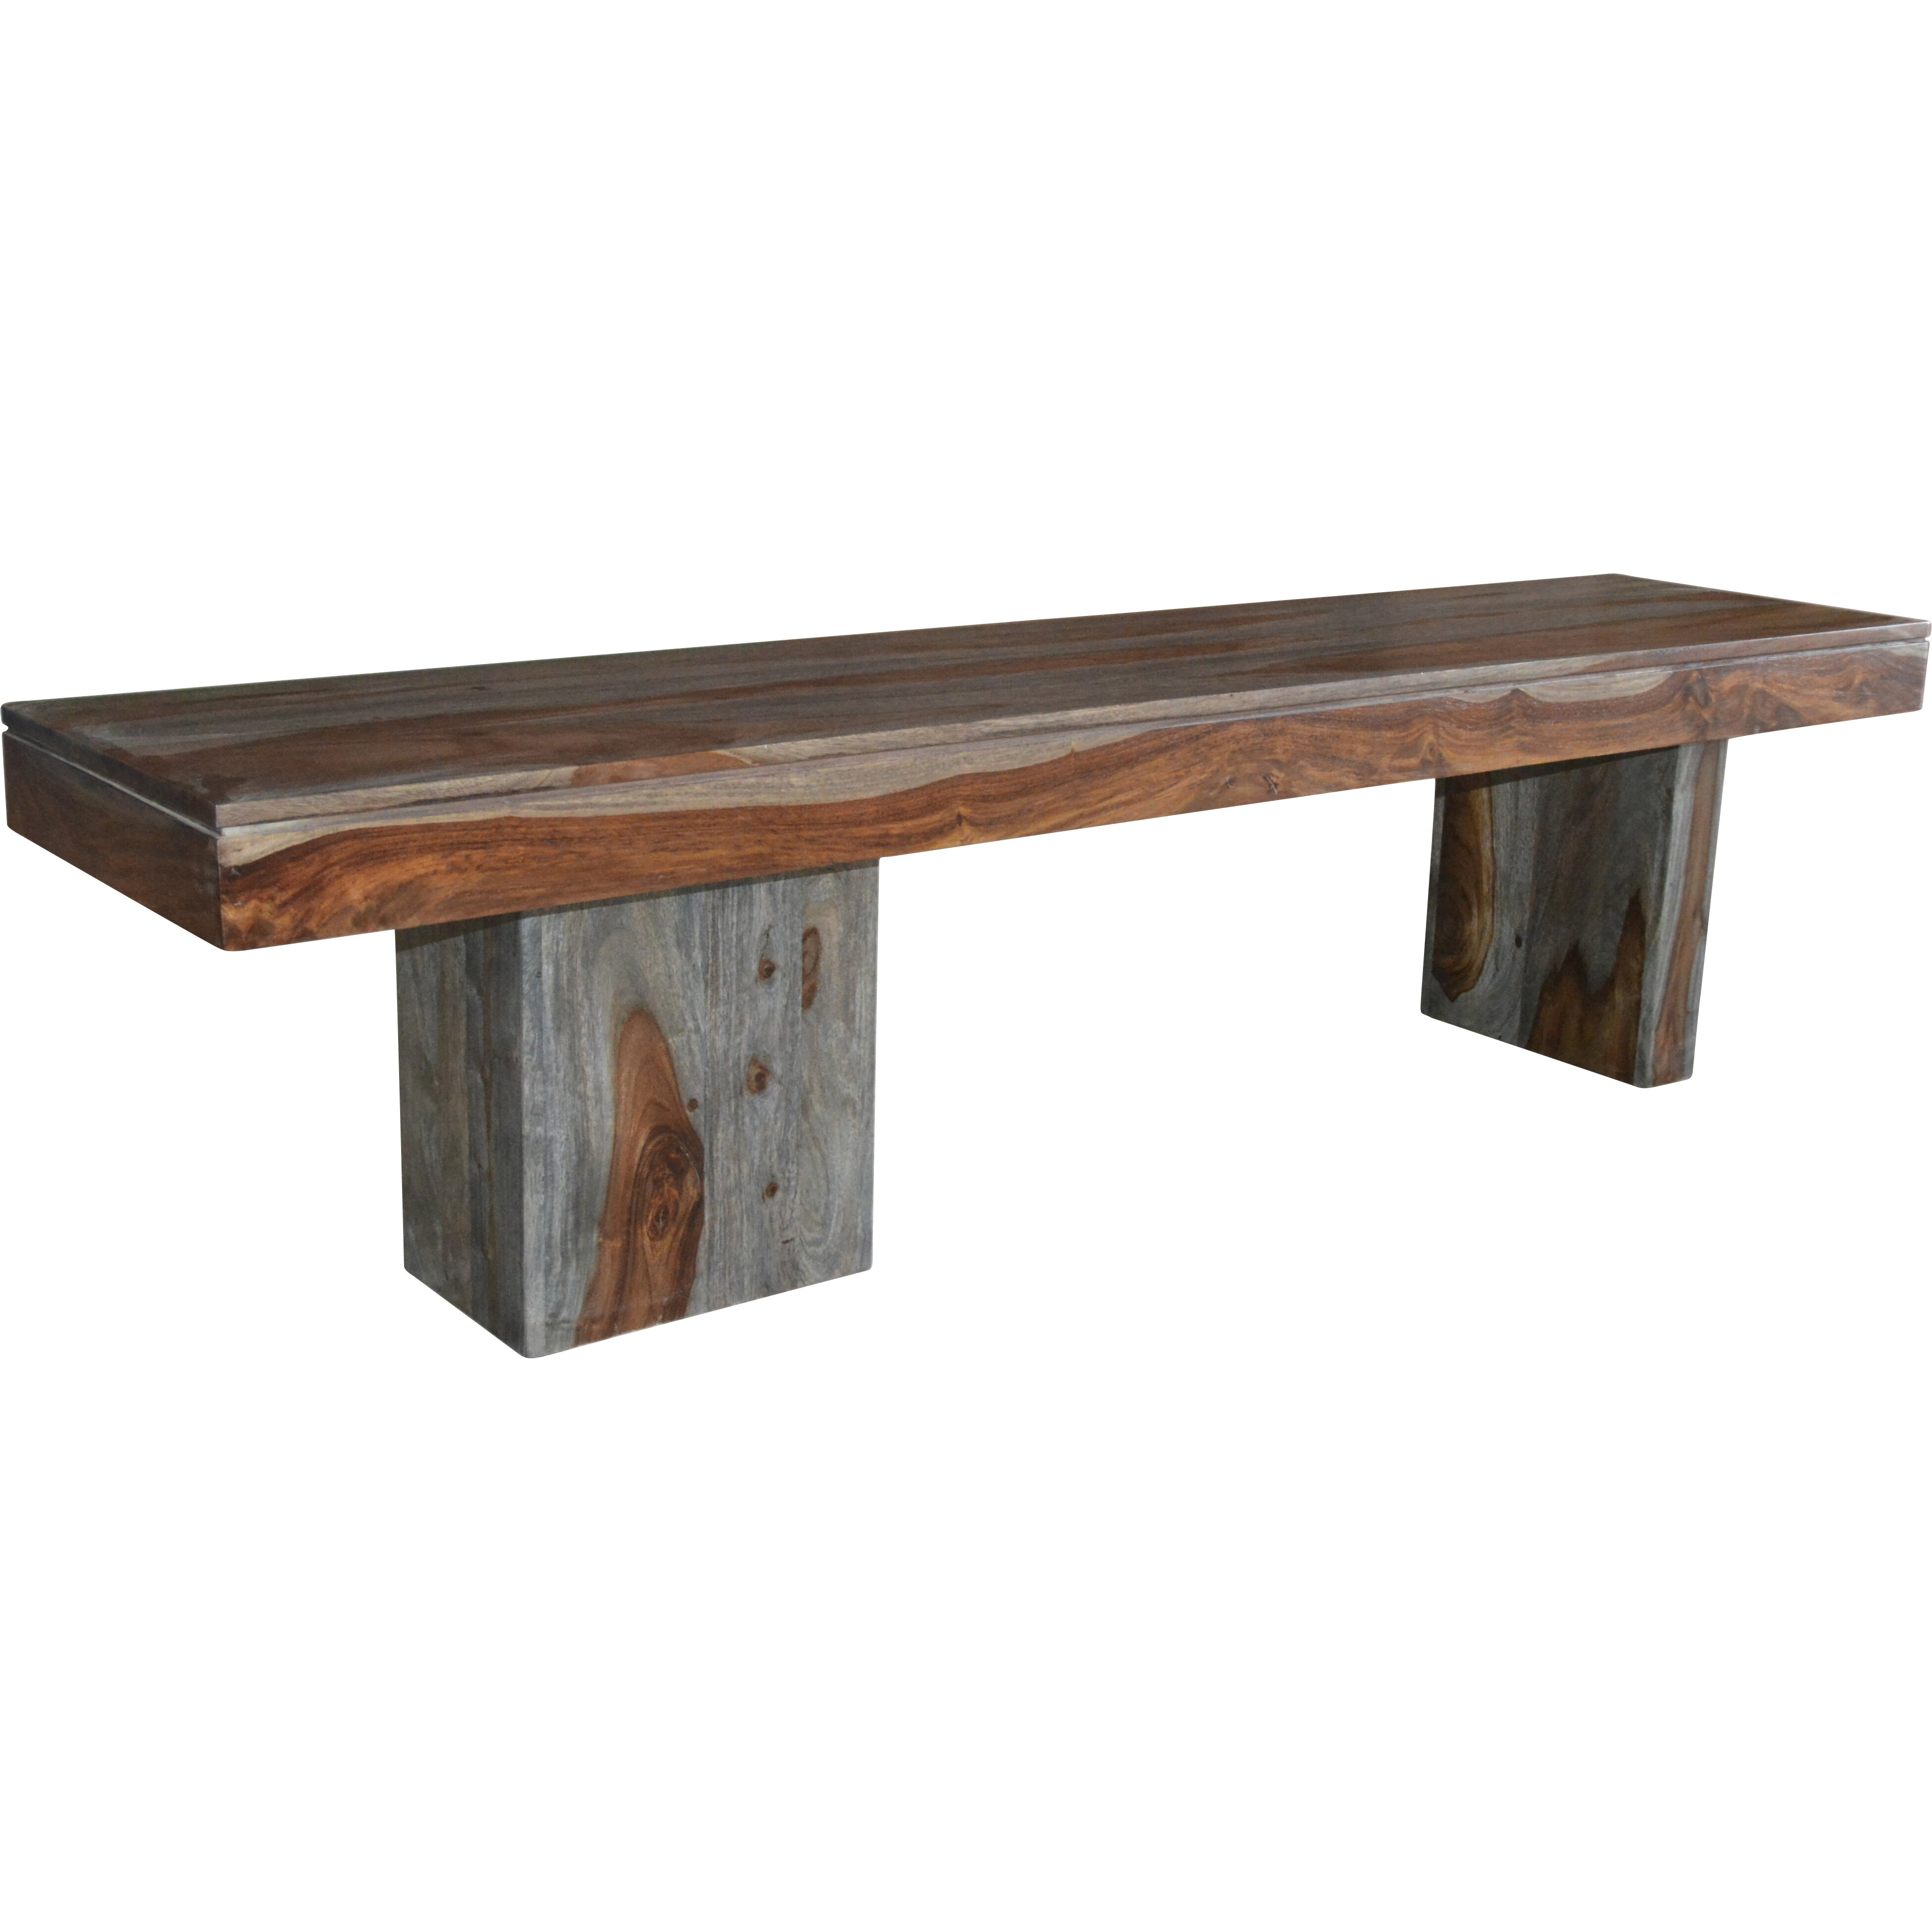 Coast to coast imports wooden bench reviews wayfair Oak bench